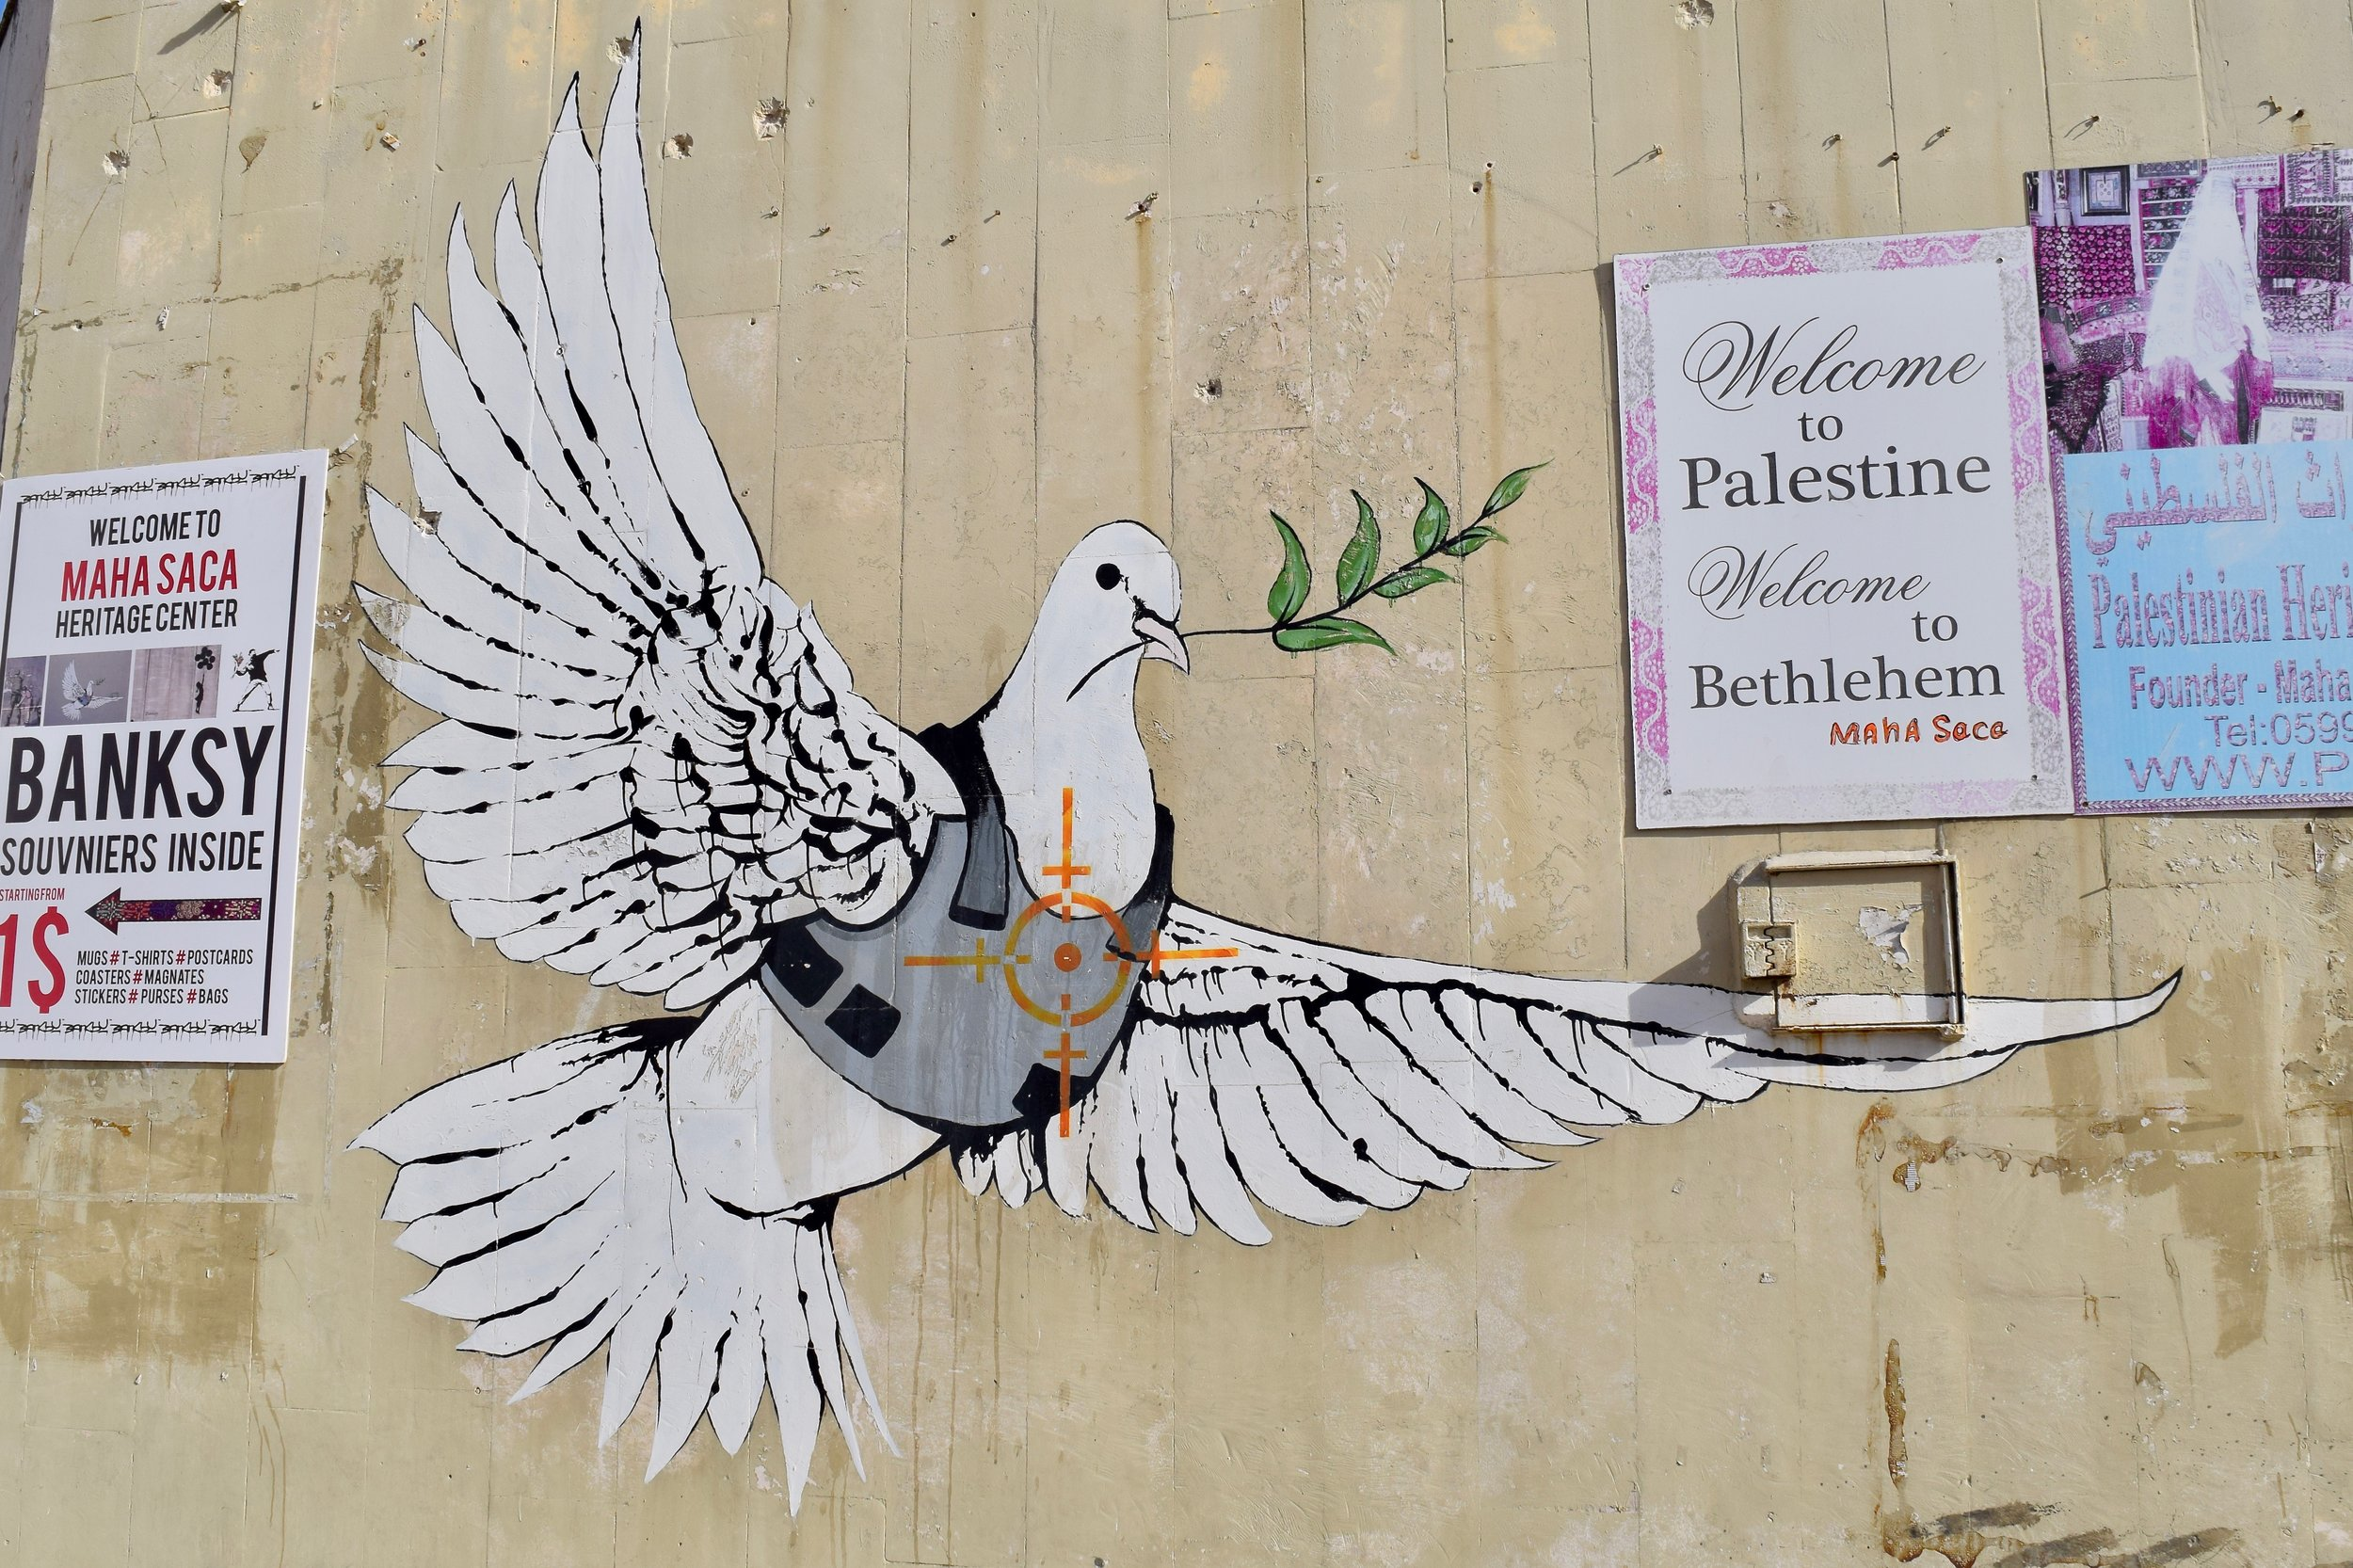 Armoured Dove of Peace by Banksy